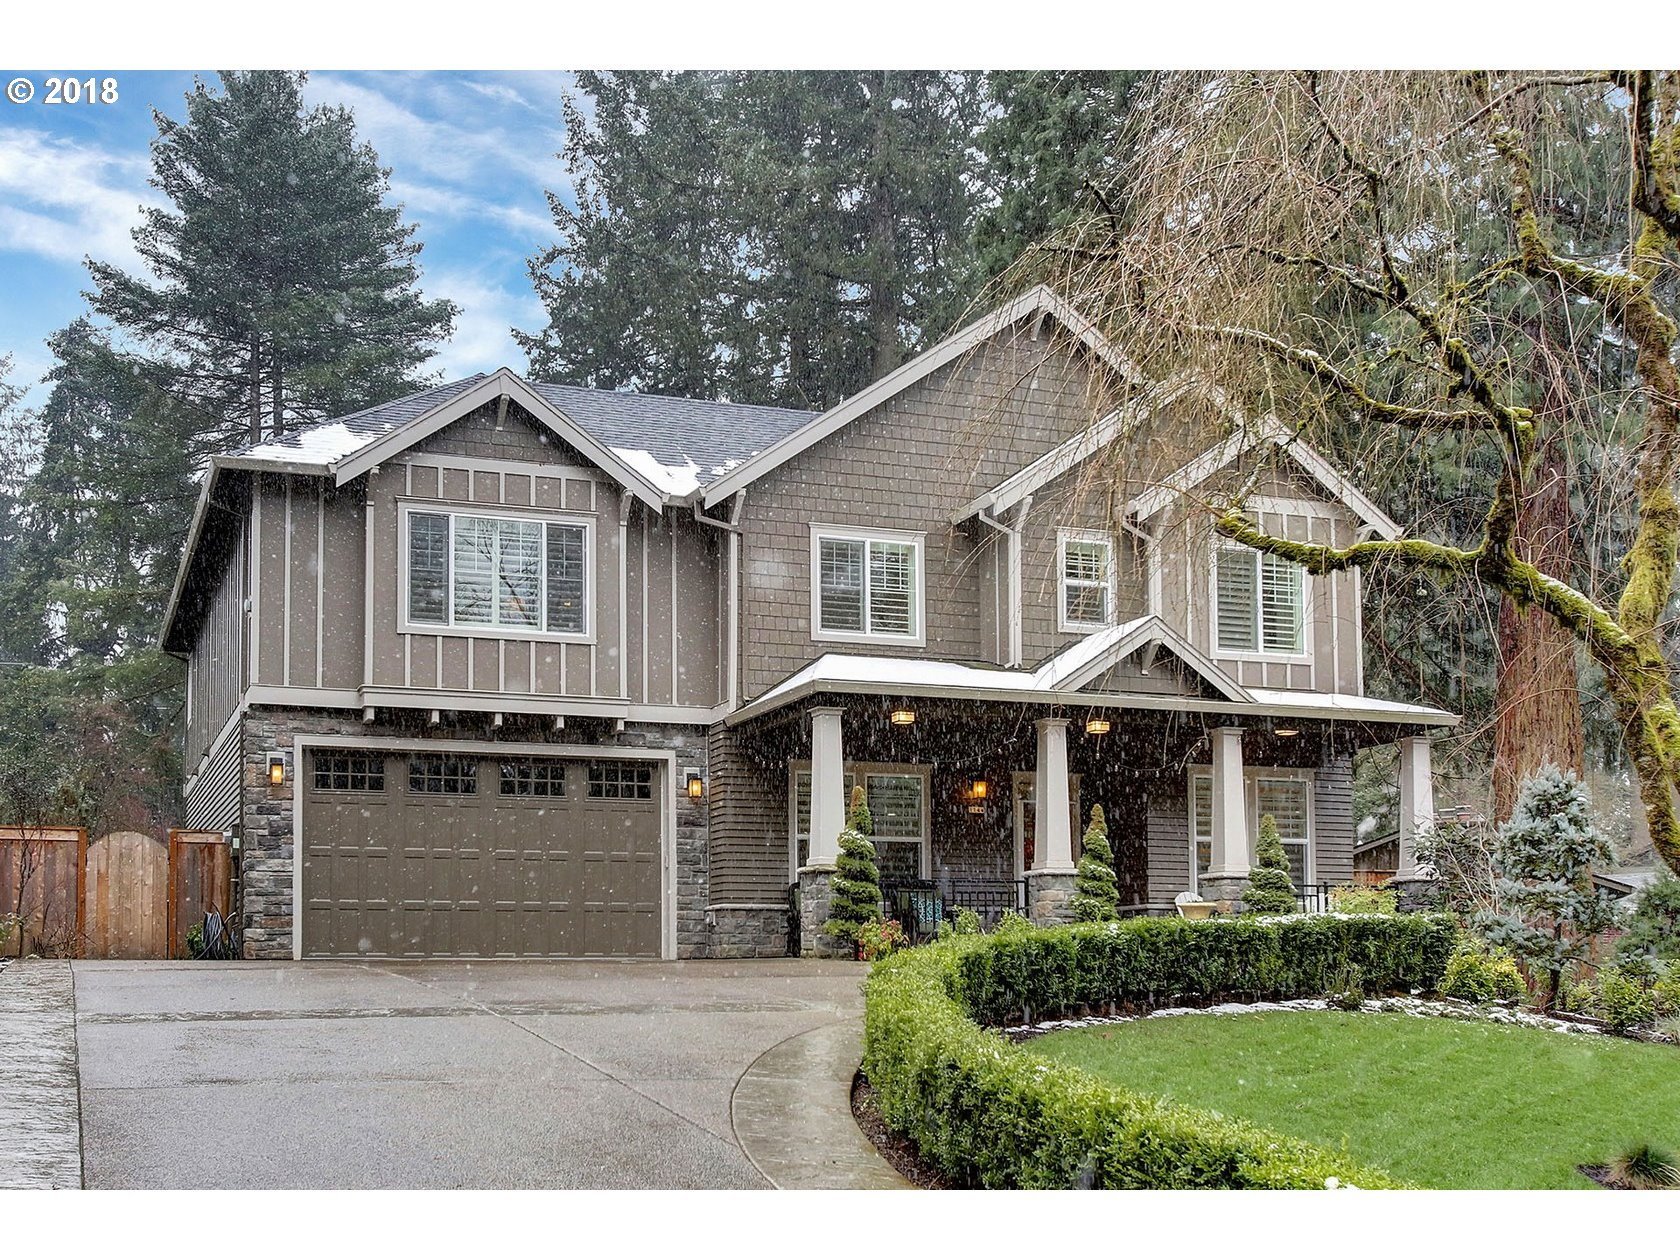 1144 BAYBERRY RD, Lake Oswego, OR 97034